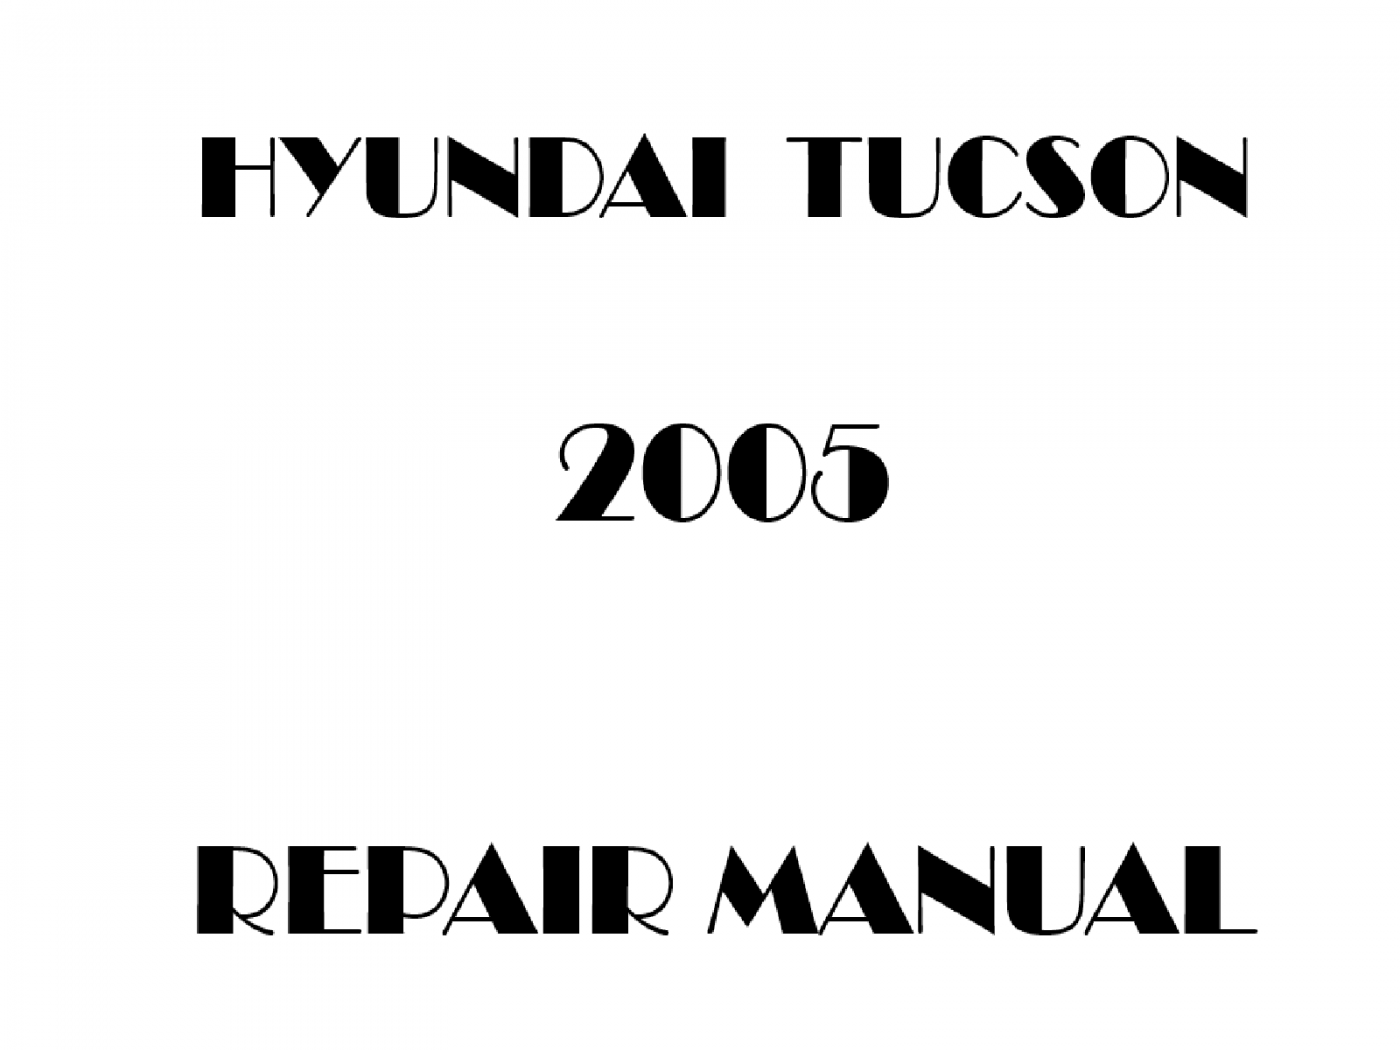 2005 Hyundai Tucson repair manual